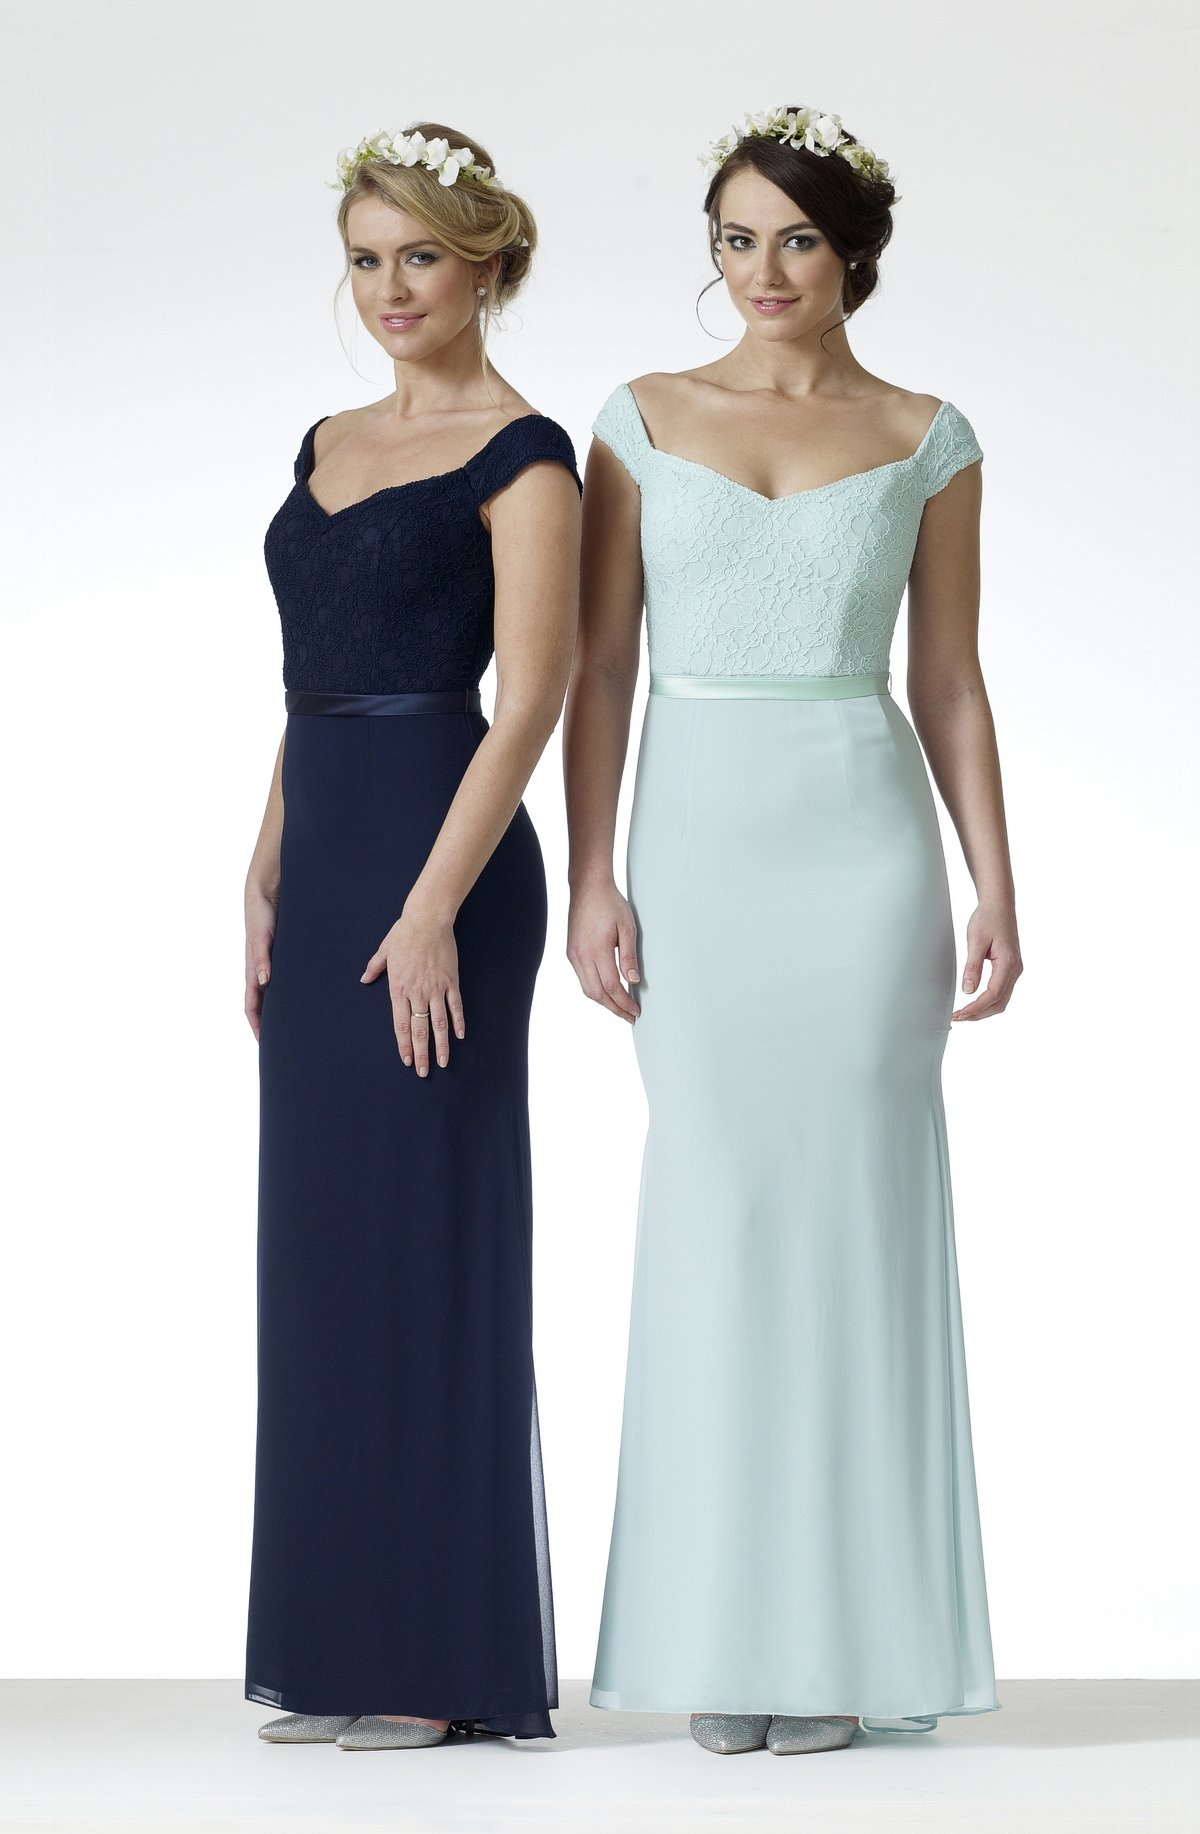 Dab11710 dzage bridesmaid collection veromia move your cursor over the images to zoom in on the detail if the zoom does not work immediately press refresh ombrellifo Choice Image